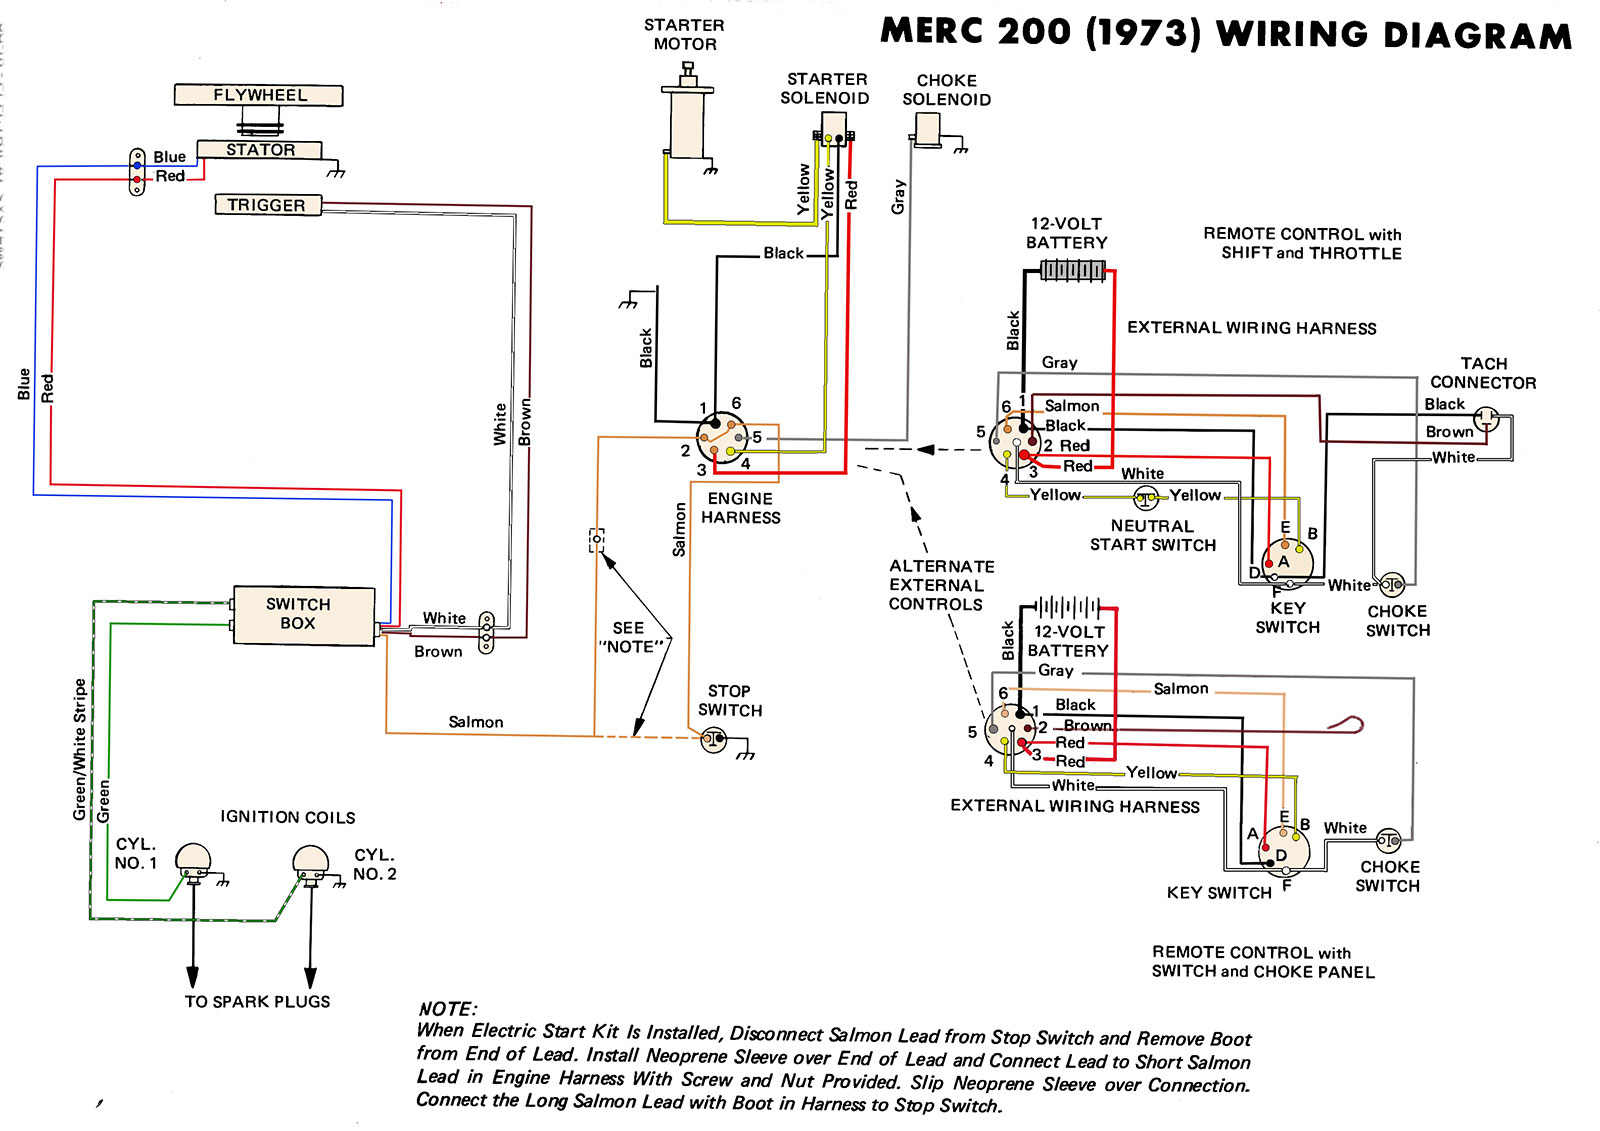 Mercury Outboard Wiring diagrams -- Mastertech Marine on 60 hp evinrude outboard diagrams, mercury outboard diagrams, mercury smartcraft gauges, mercury paint, mercury ranger, mercury 400r, mercury starter diagram, 89 jeep carburetor diagrams, mercury carburetor, mercury schematics, mercury electrical diagrams, mercury outboard motors, mercury parts diagrams, mercury tilt switch, mercury motor diagrams, mercury shifter diagram, mercury key switch diagram, boat battery hookup diagrams,